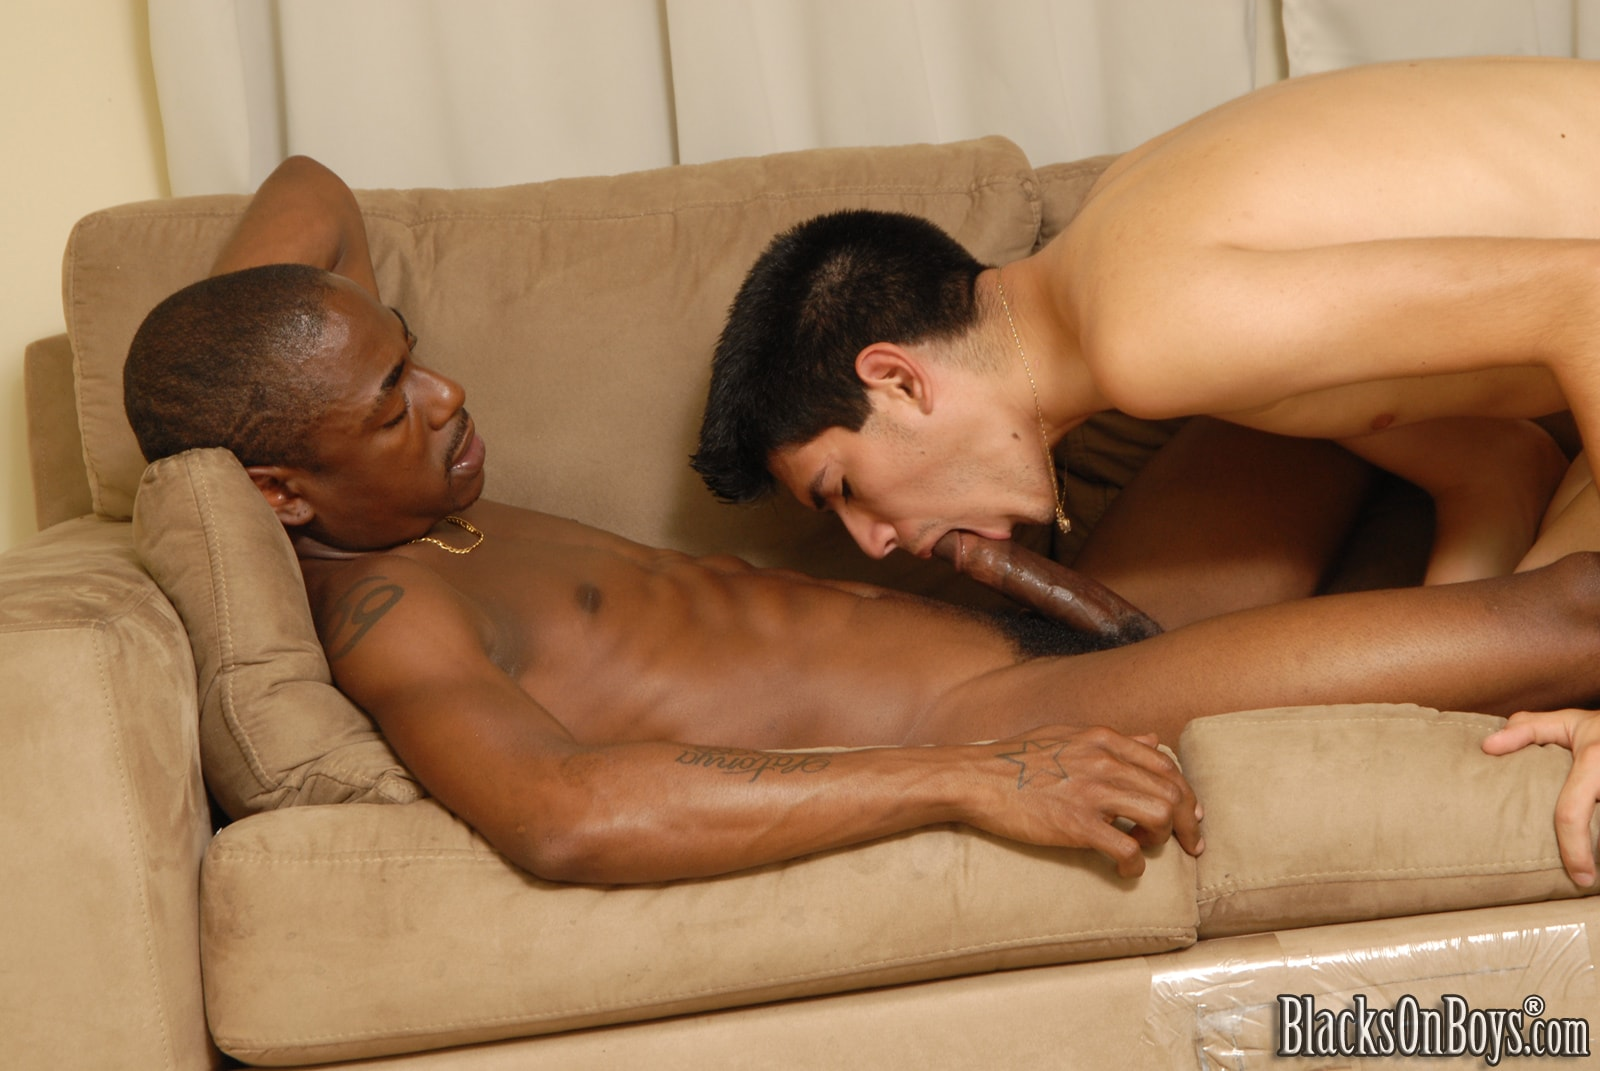 Dogfart Men '- Blacks On Boys' starring Bradley Wood (Photo 19)